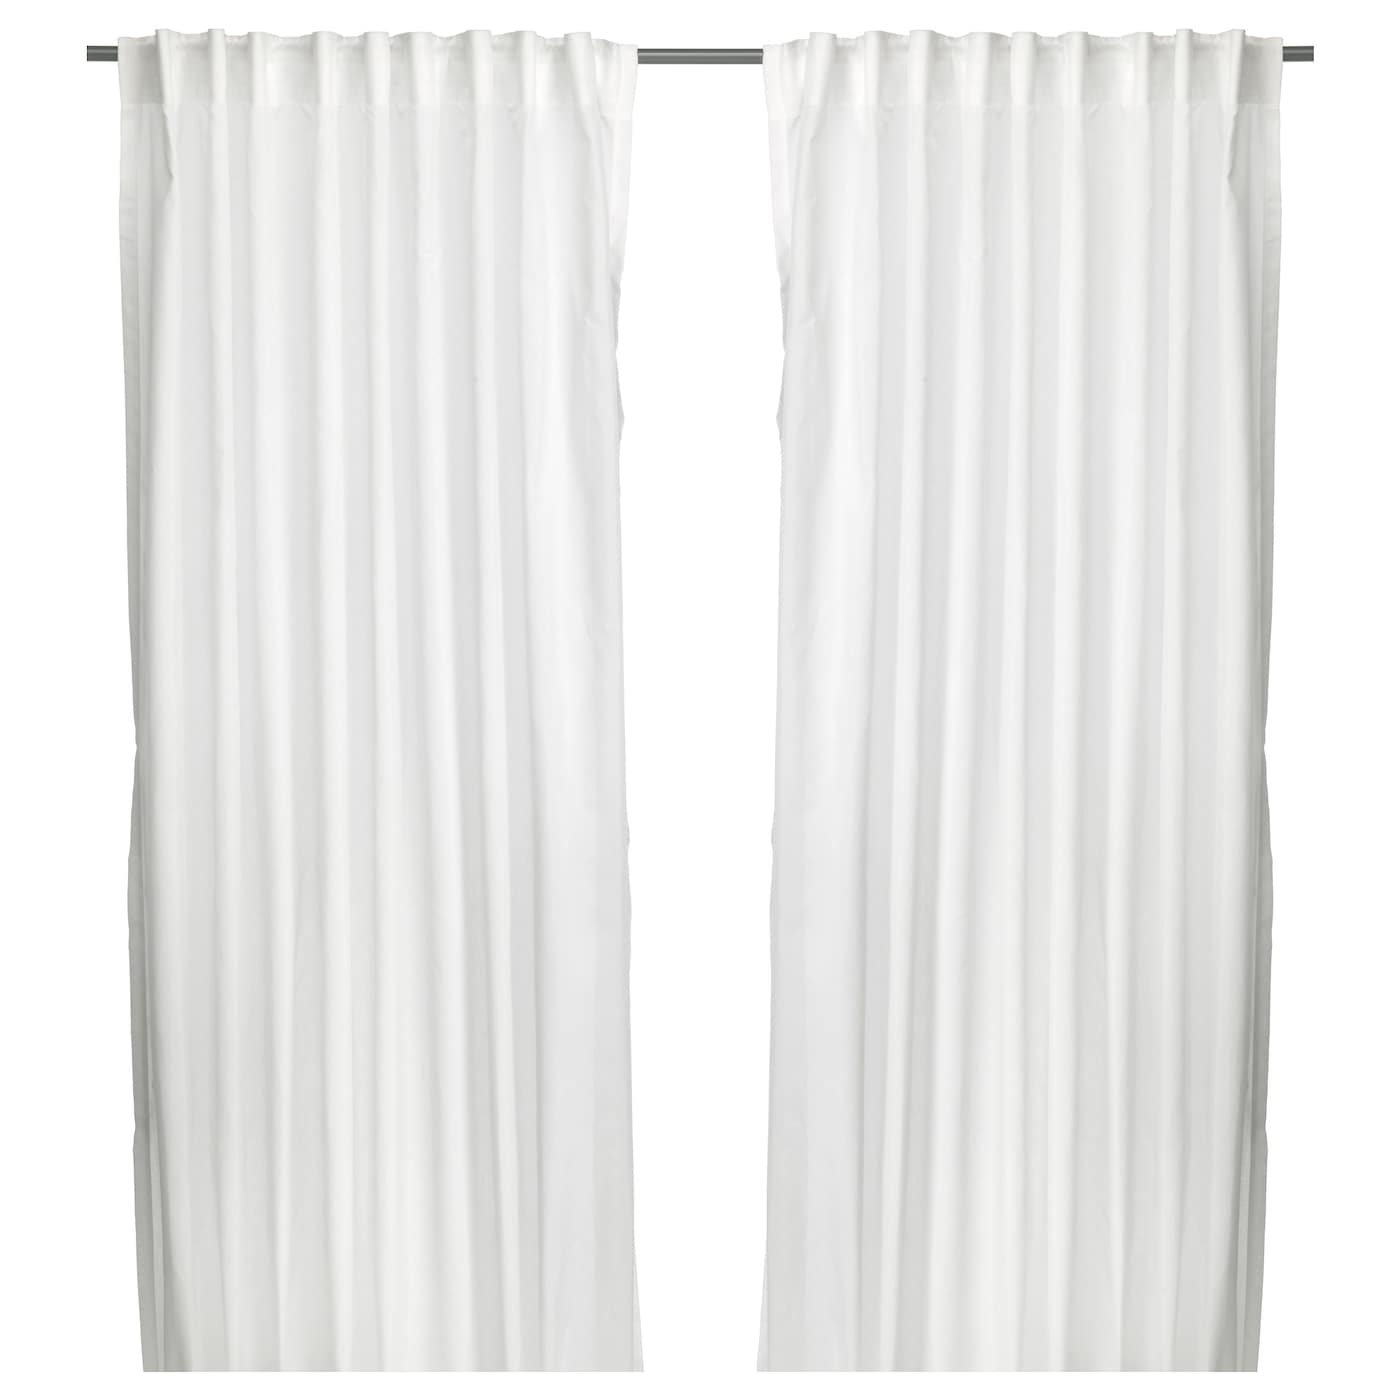 pin add a bamboo airy and room feel shades curtains white merete light to ikea